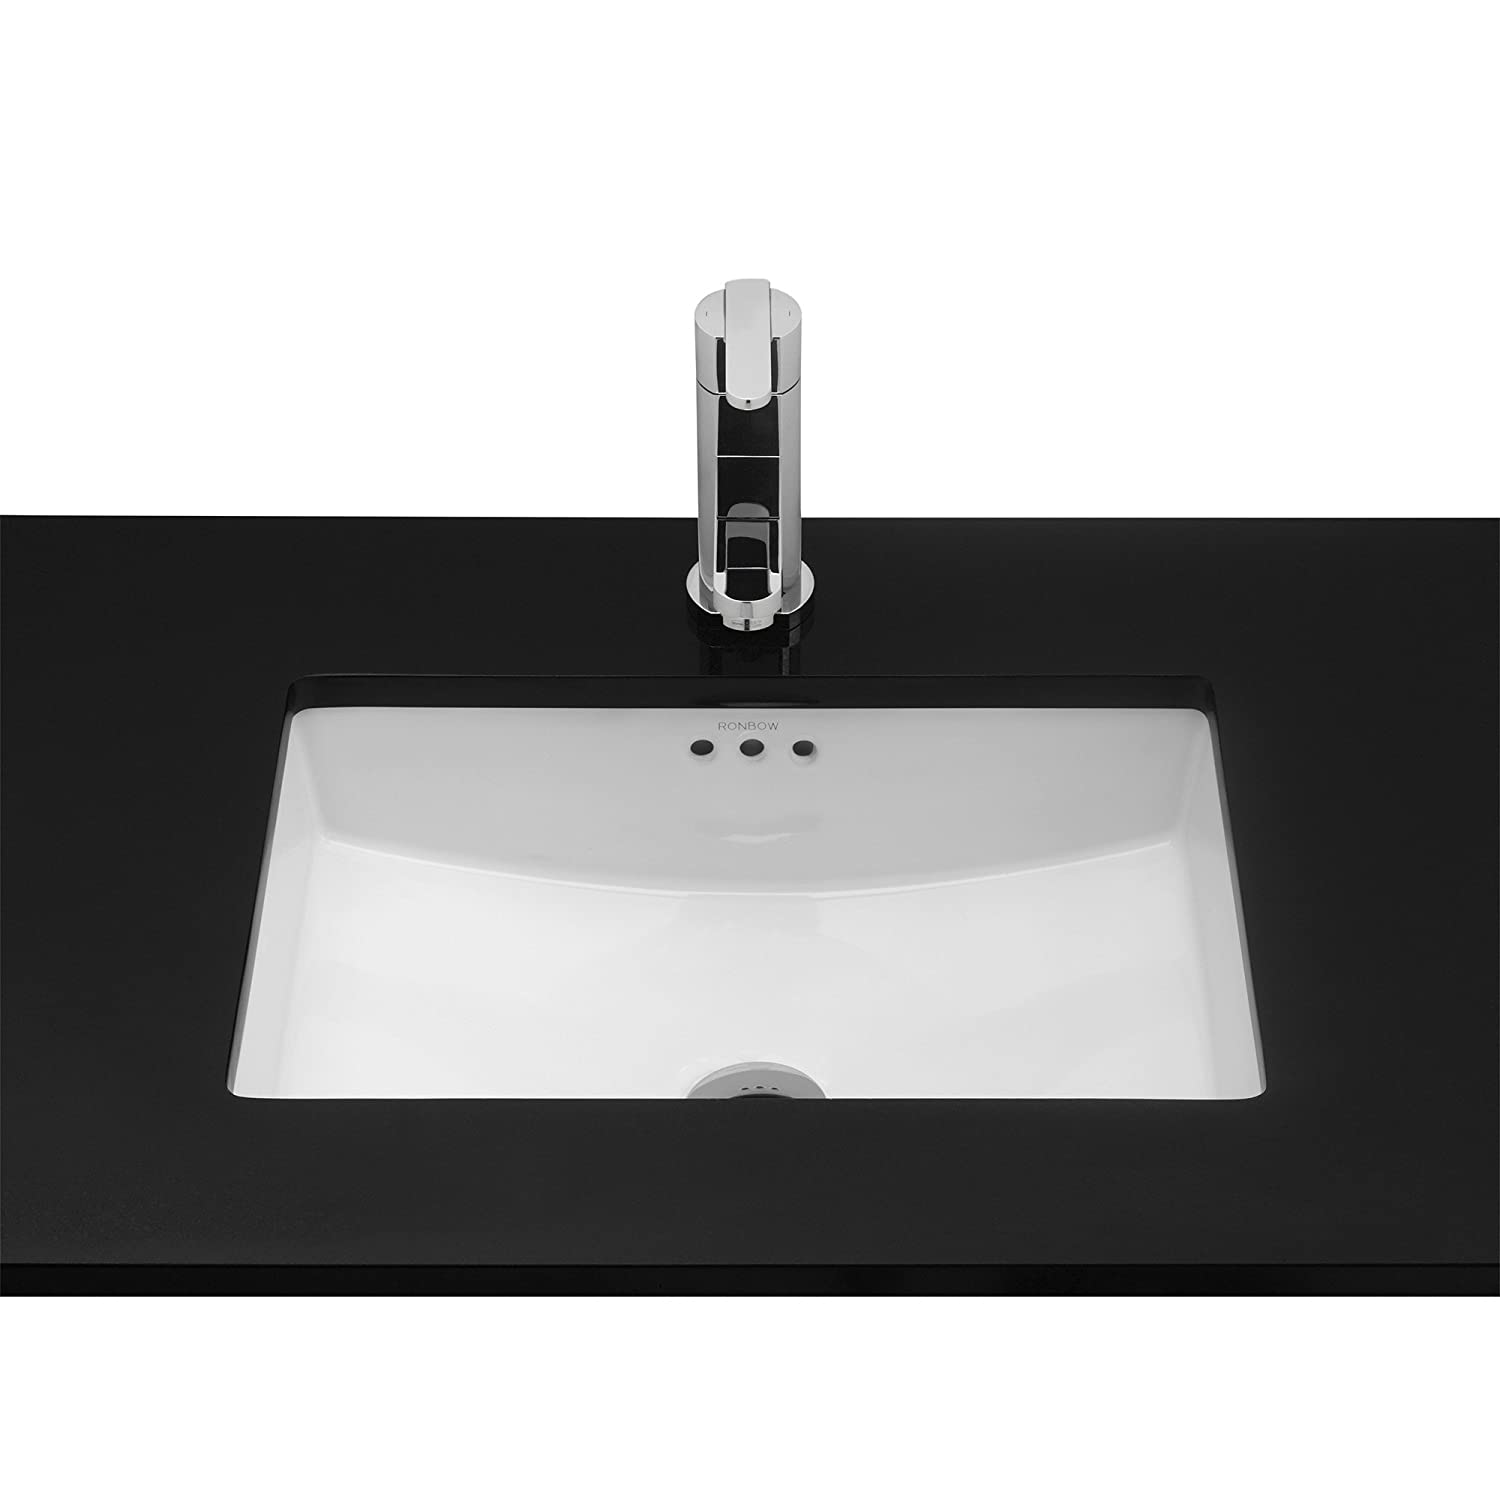 RONBOW Essence 20 Inch Undermount Ceramic Vessel Bathroom Vanity ...